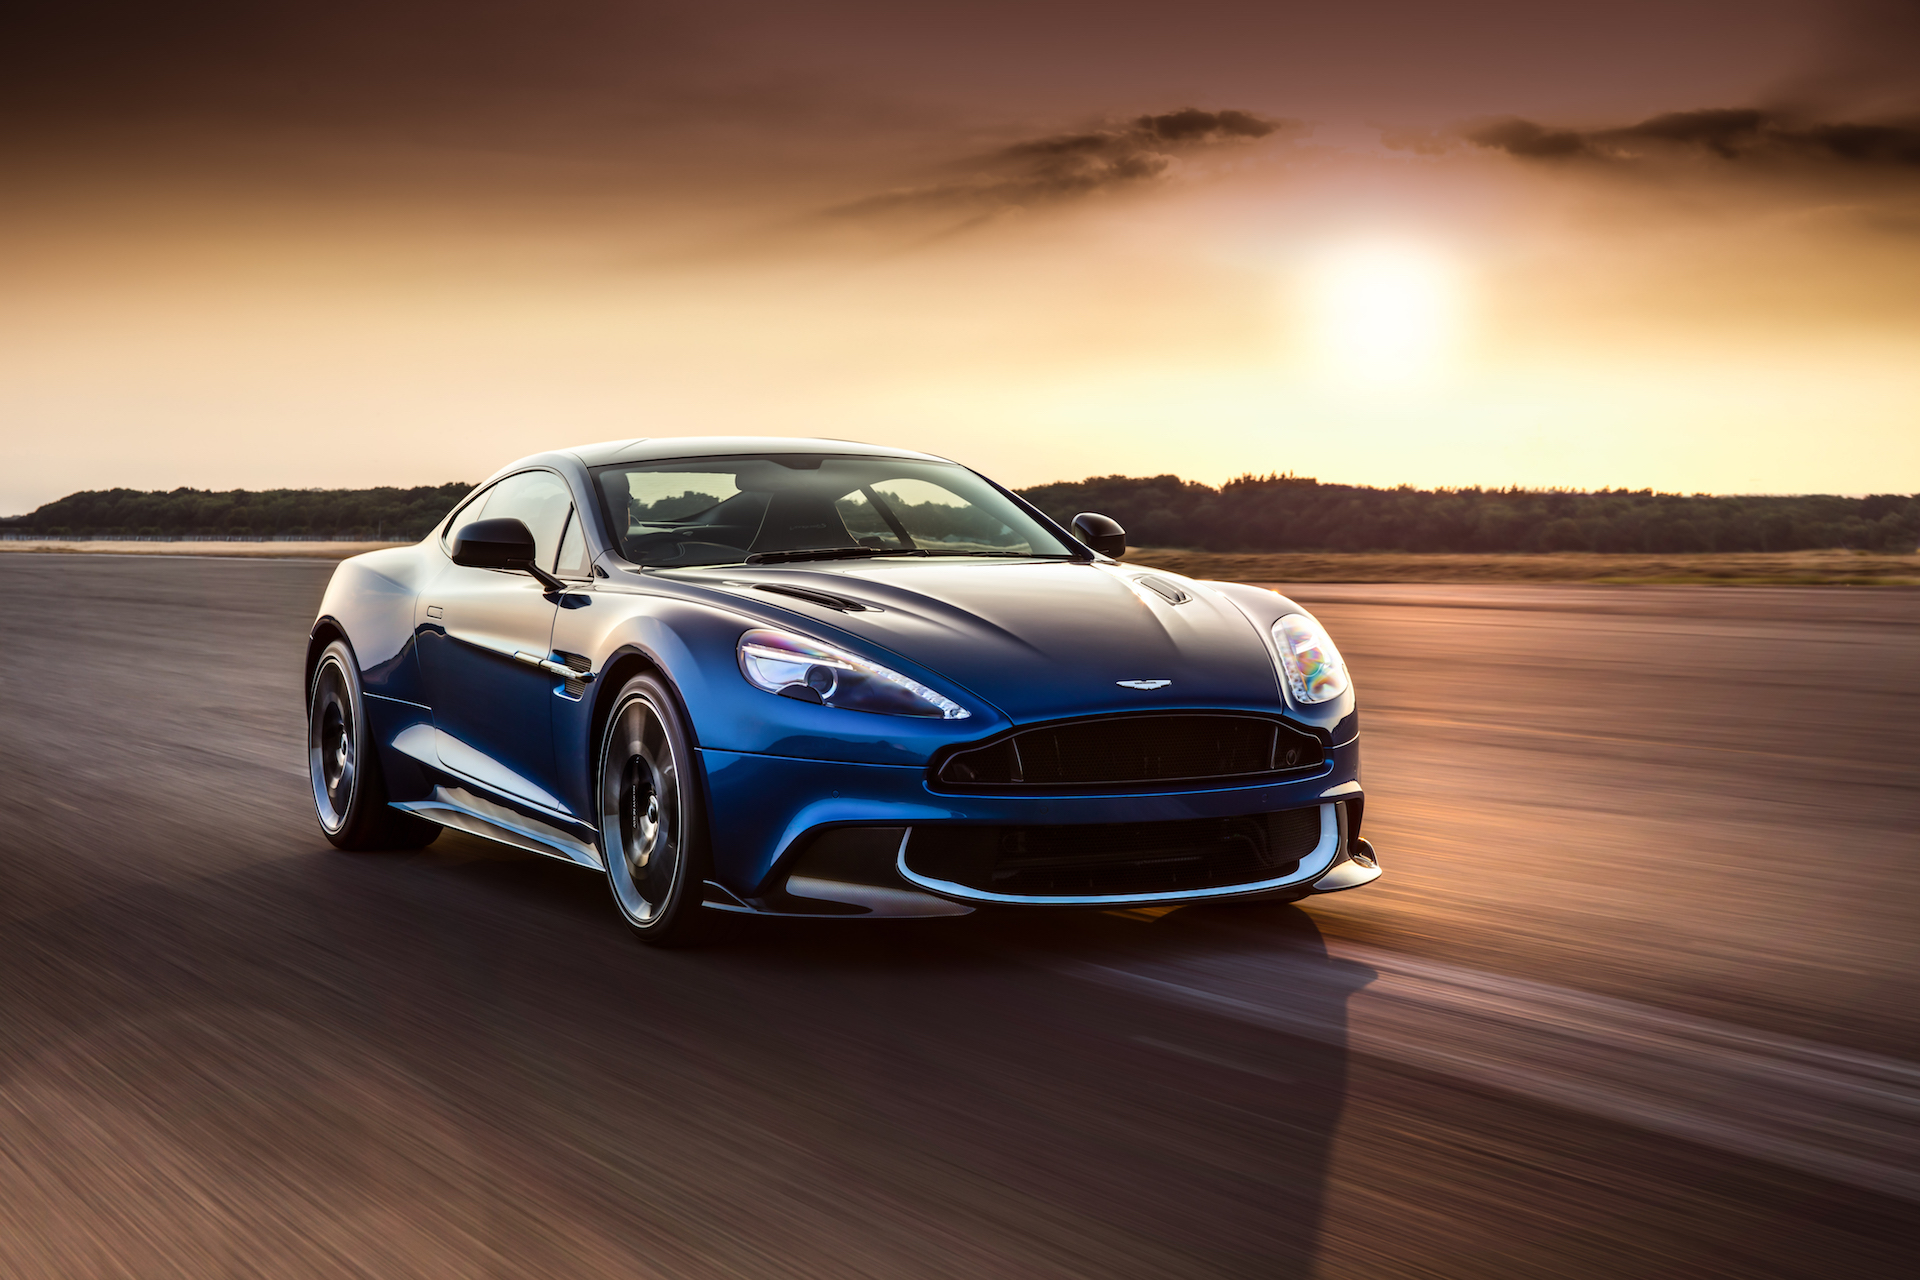 Someone paid $26M for outgoing Aston Martin Vanquish s tooling and